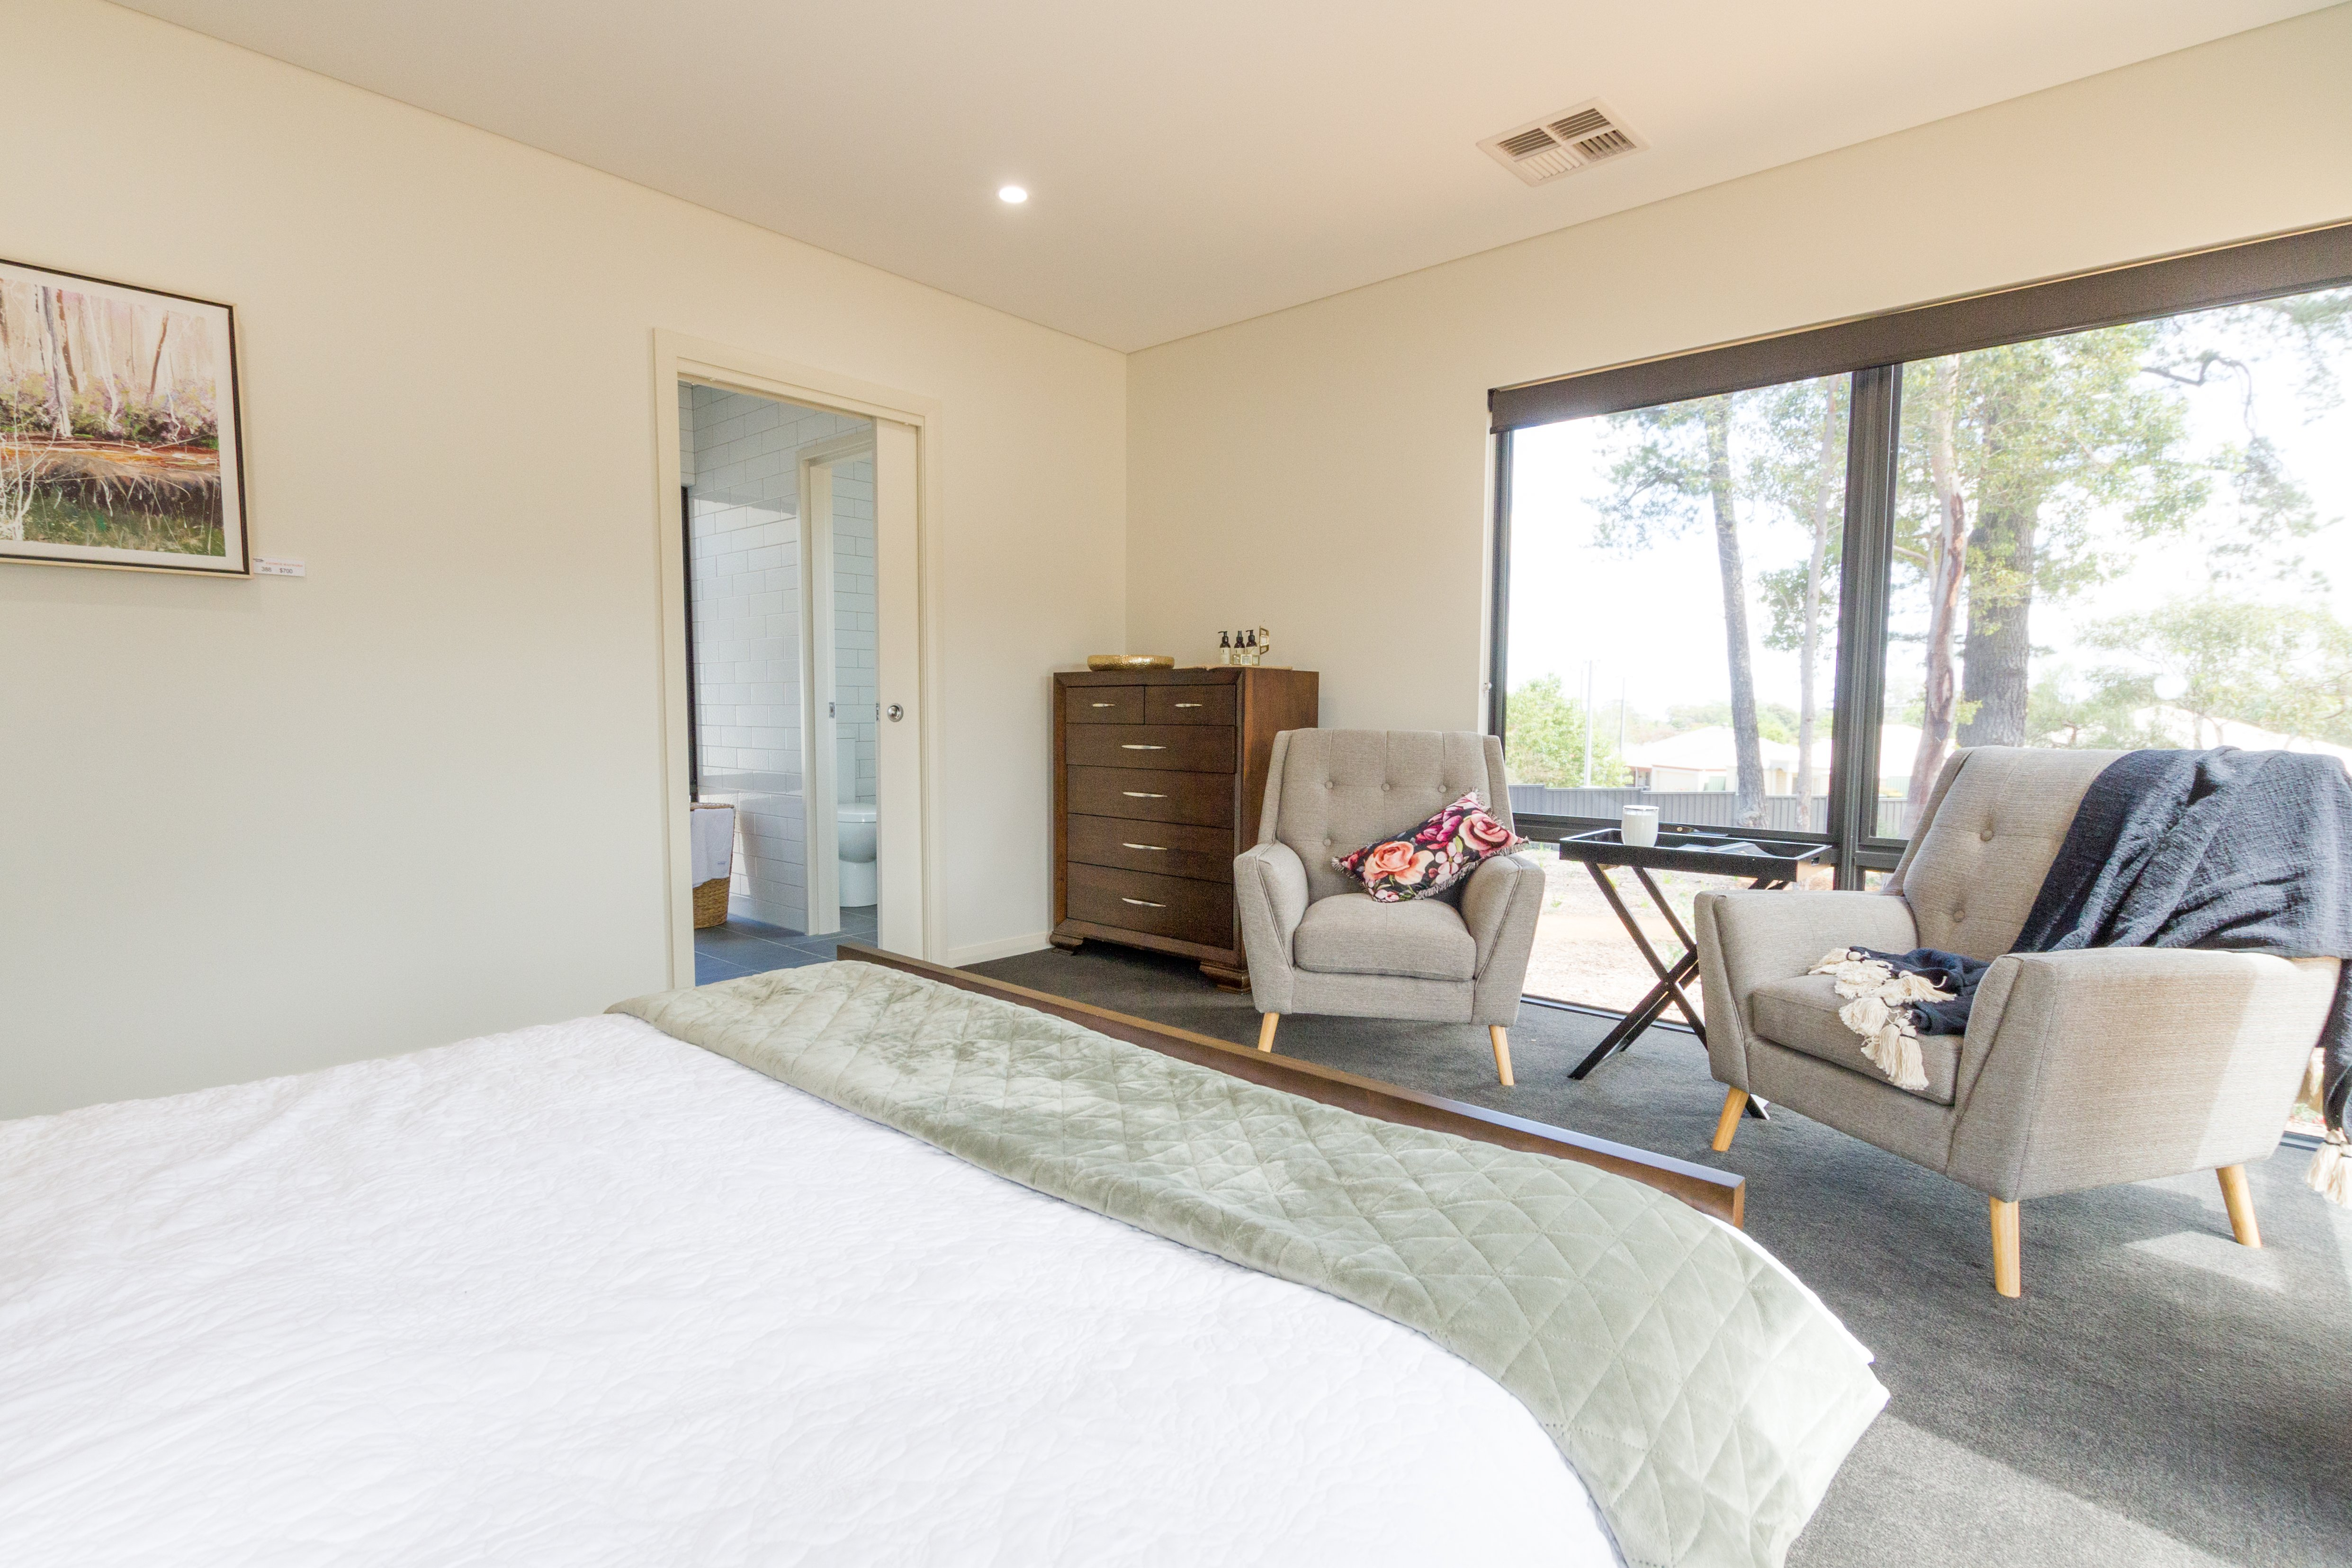 Bedroom with queen sized bed and two seats overlooking a big window | Transportable Homes Perth